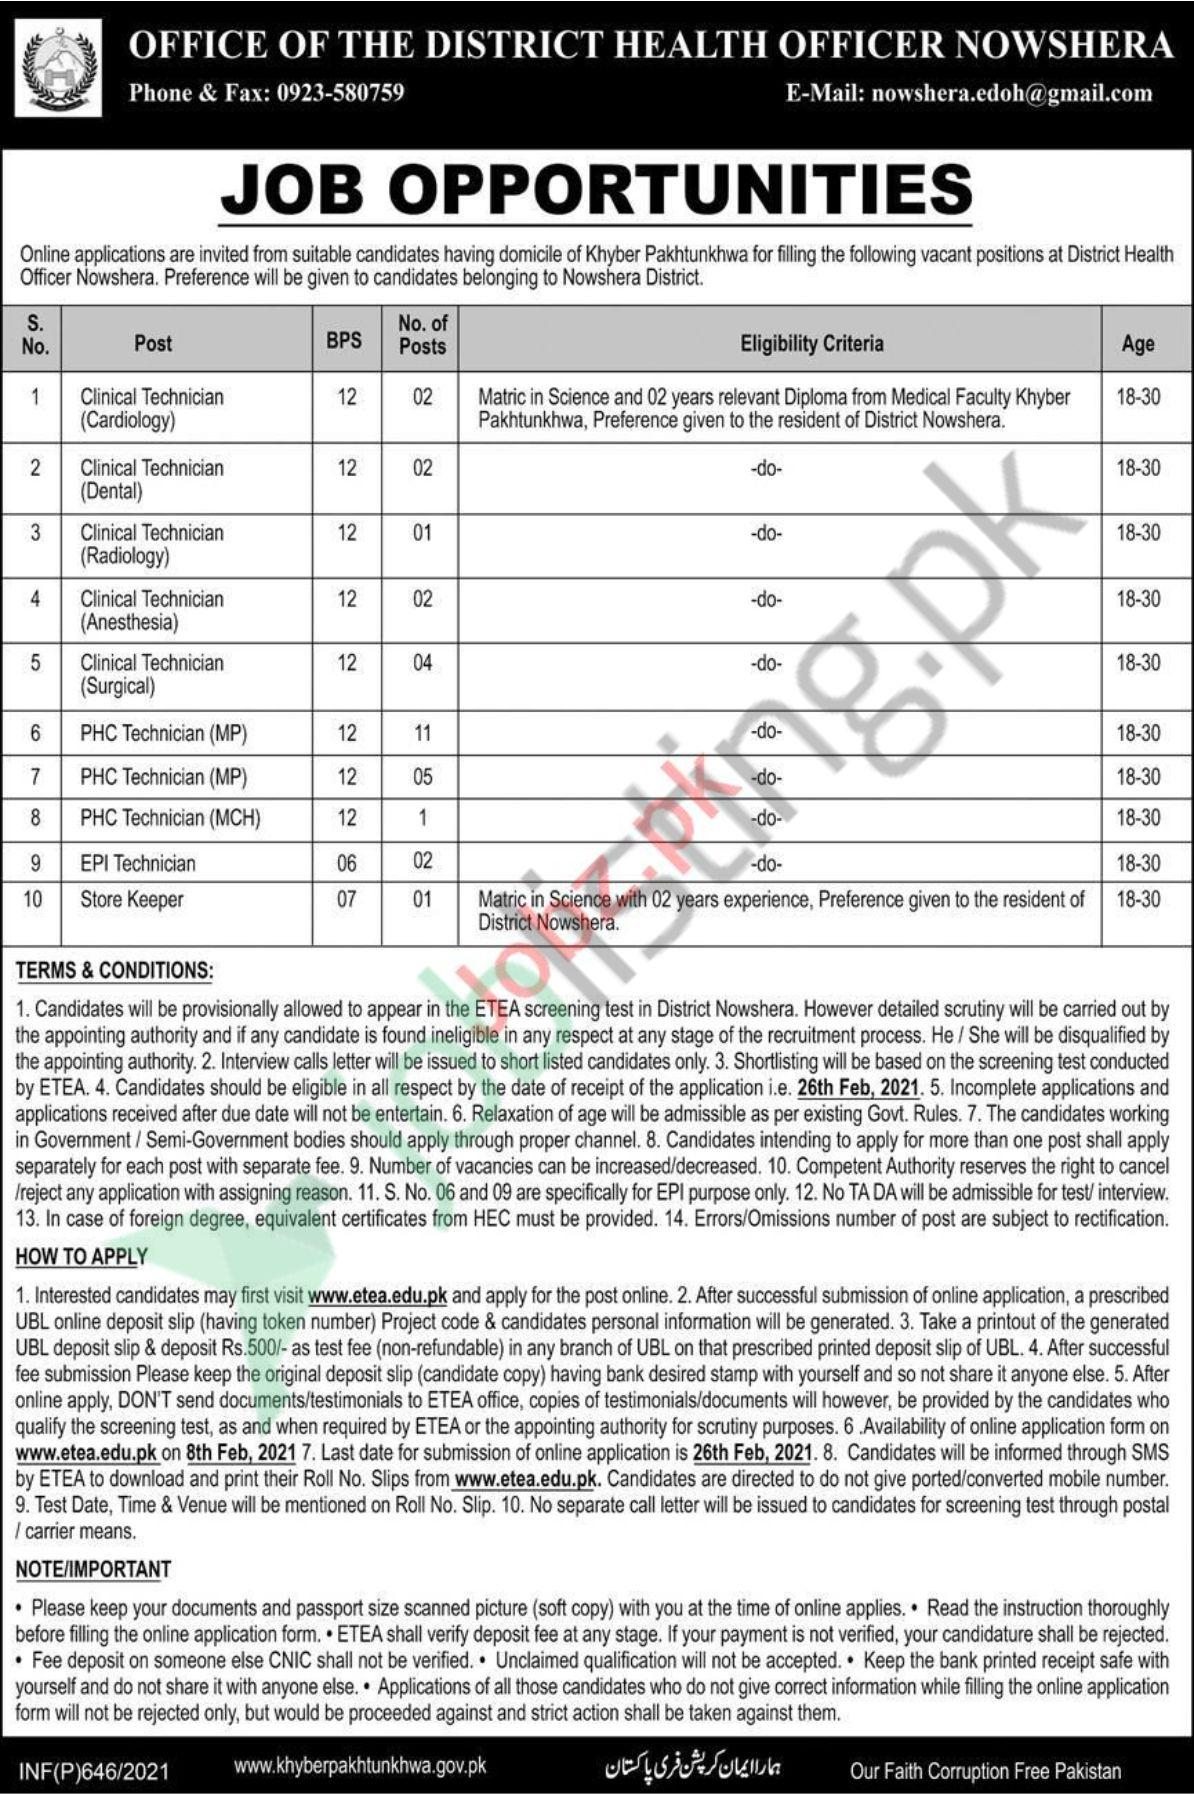 District Health Officer Nowshera Jobs 2021 Apply Online